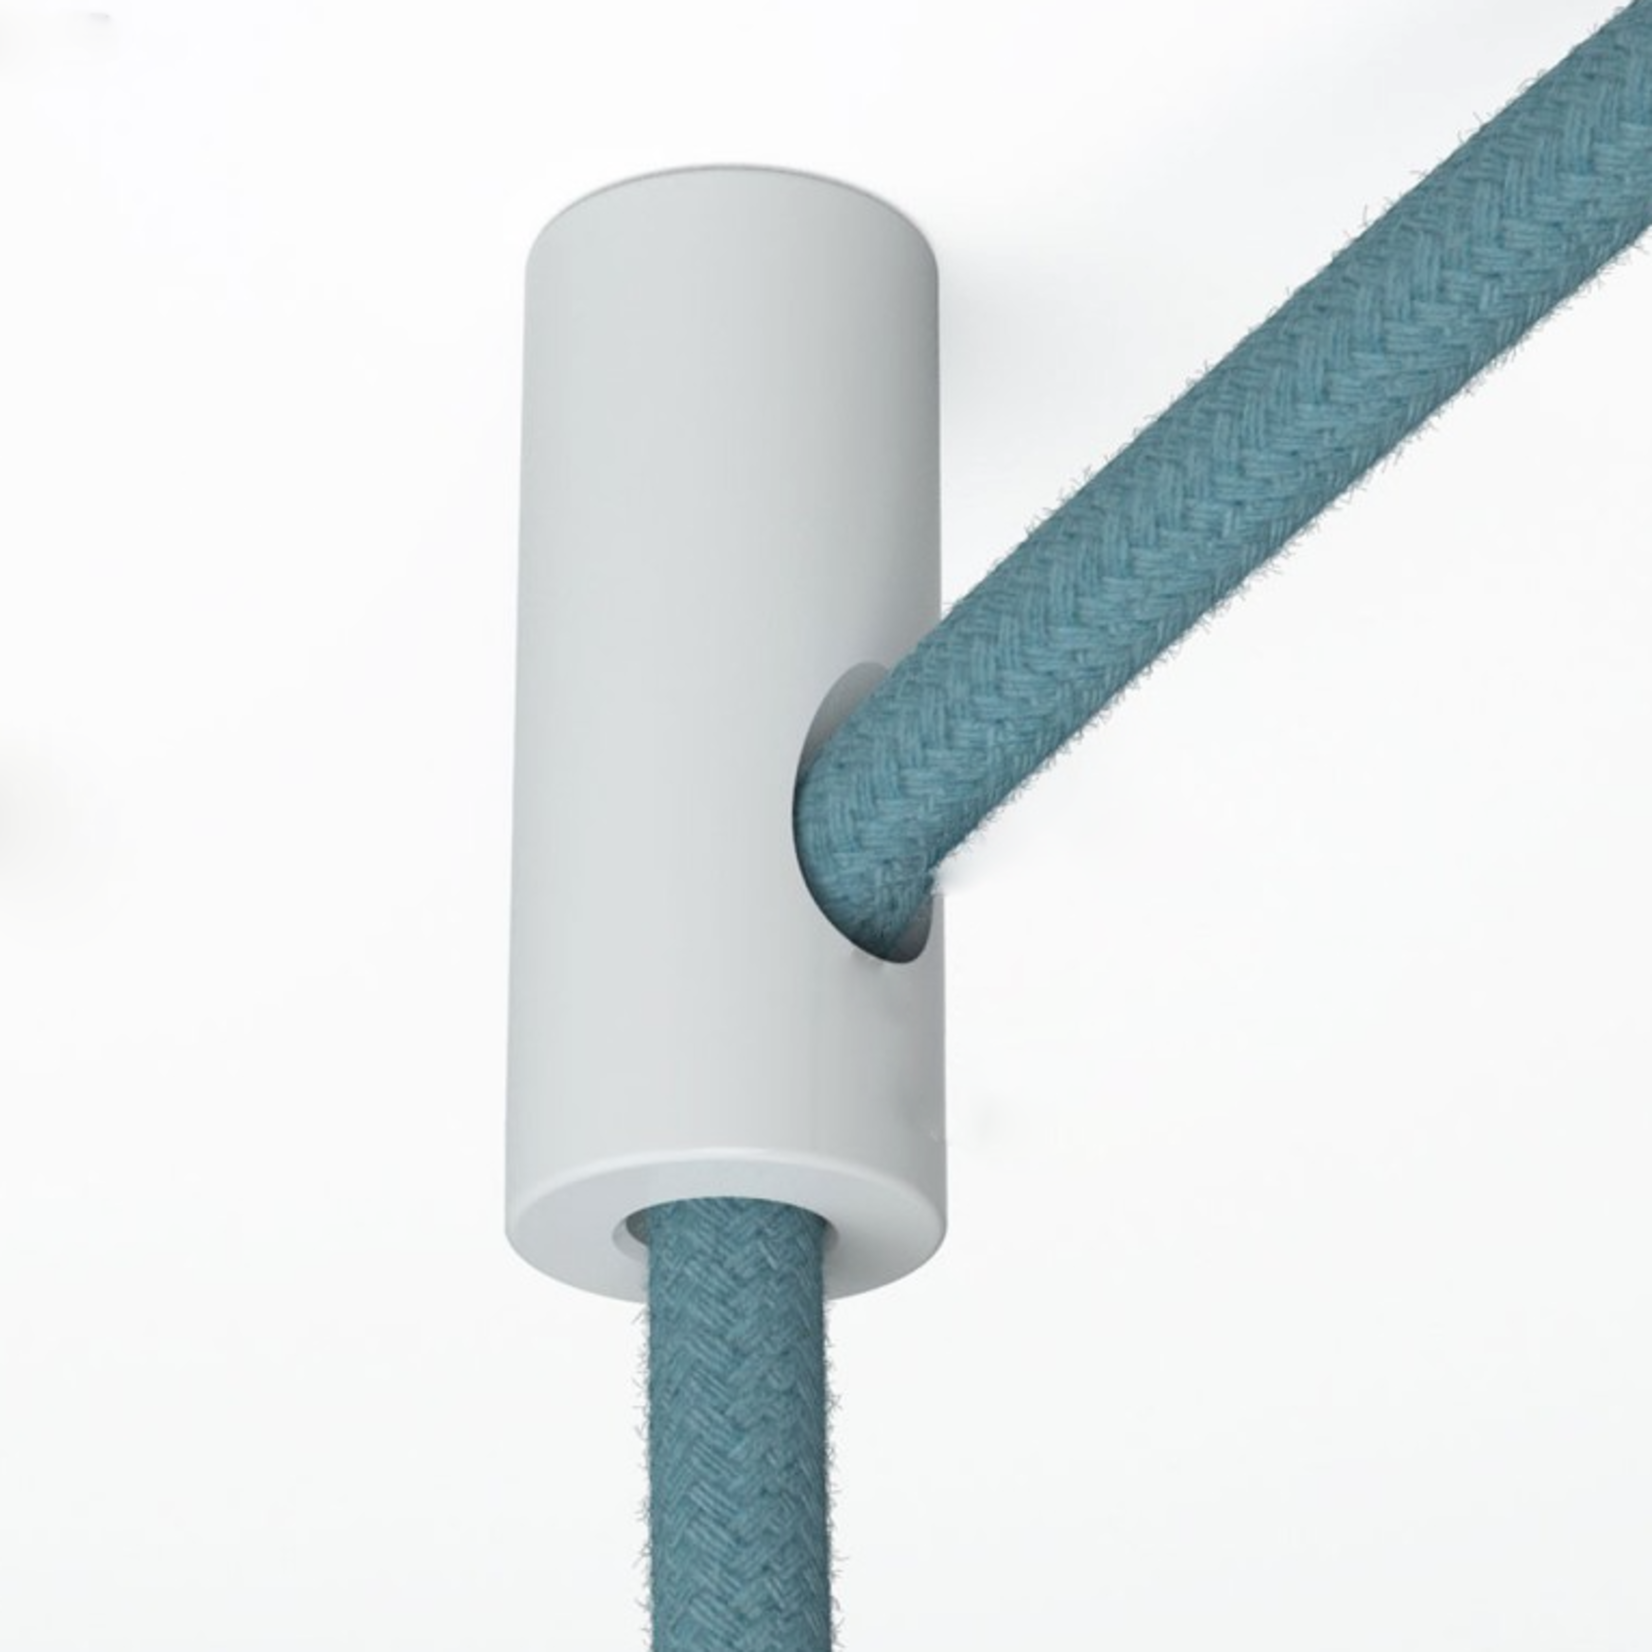 CCIT Cable Drop and Grip White Plastic ceiling hook and stop fabric cable grip for cable